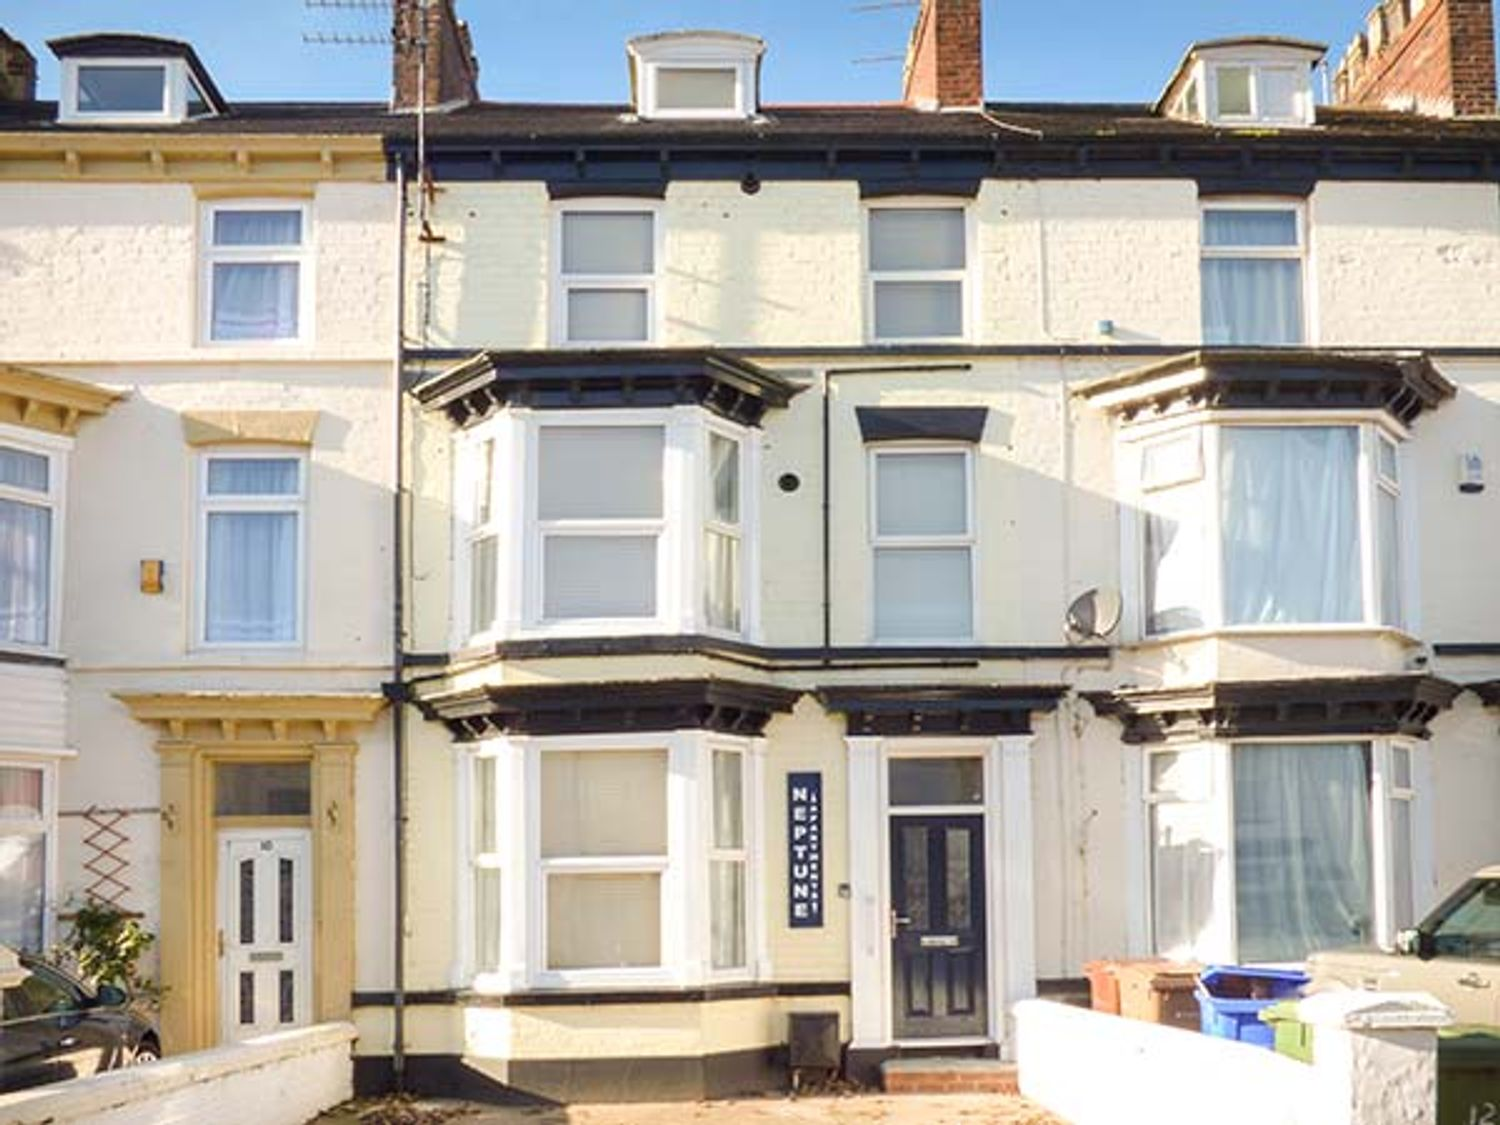 Flat 2 - Whitby & North Yorkshire - 942061 - photo 1